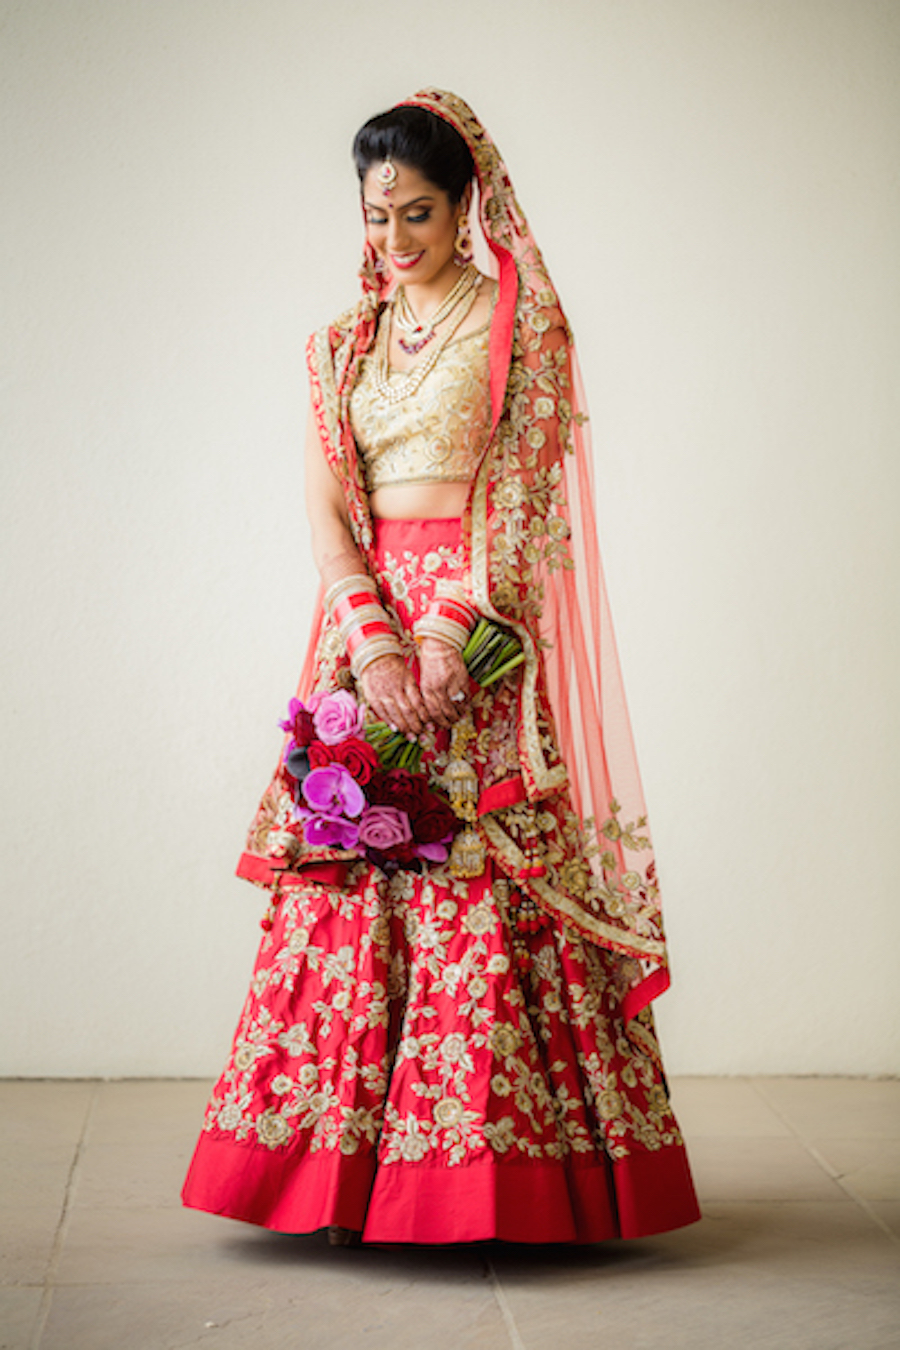 0020-MN-St-Regis-Monarch-Beach-Resort-Indian-Wedding-Photography